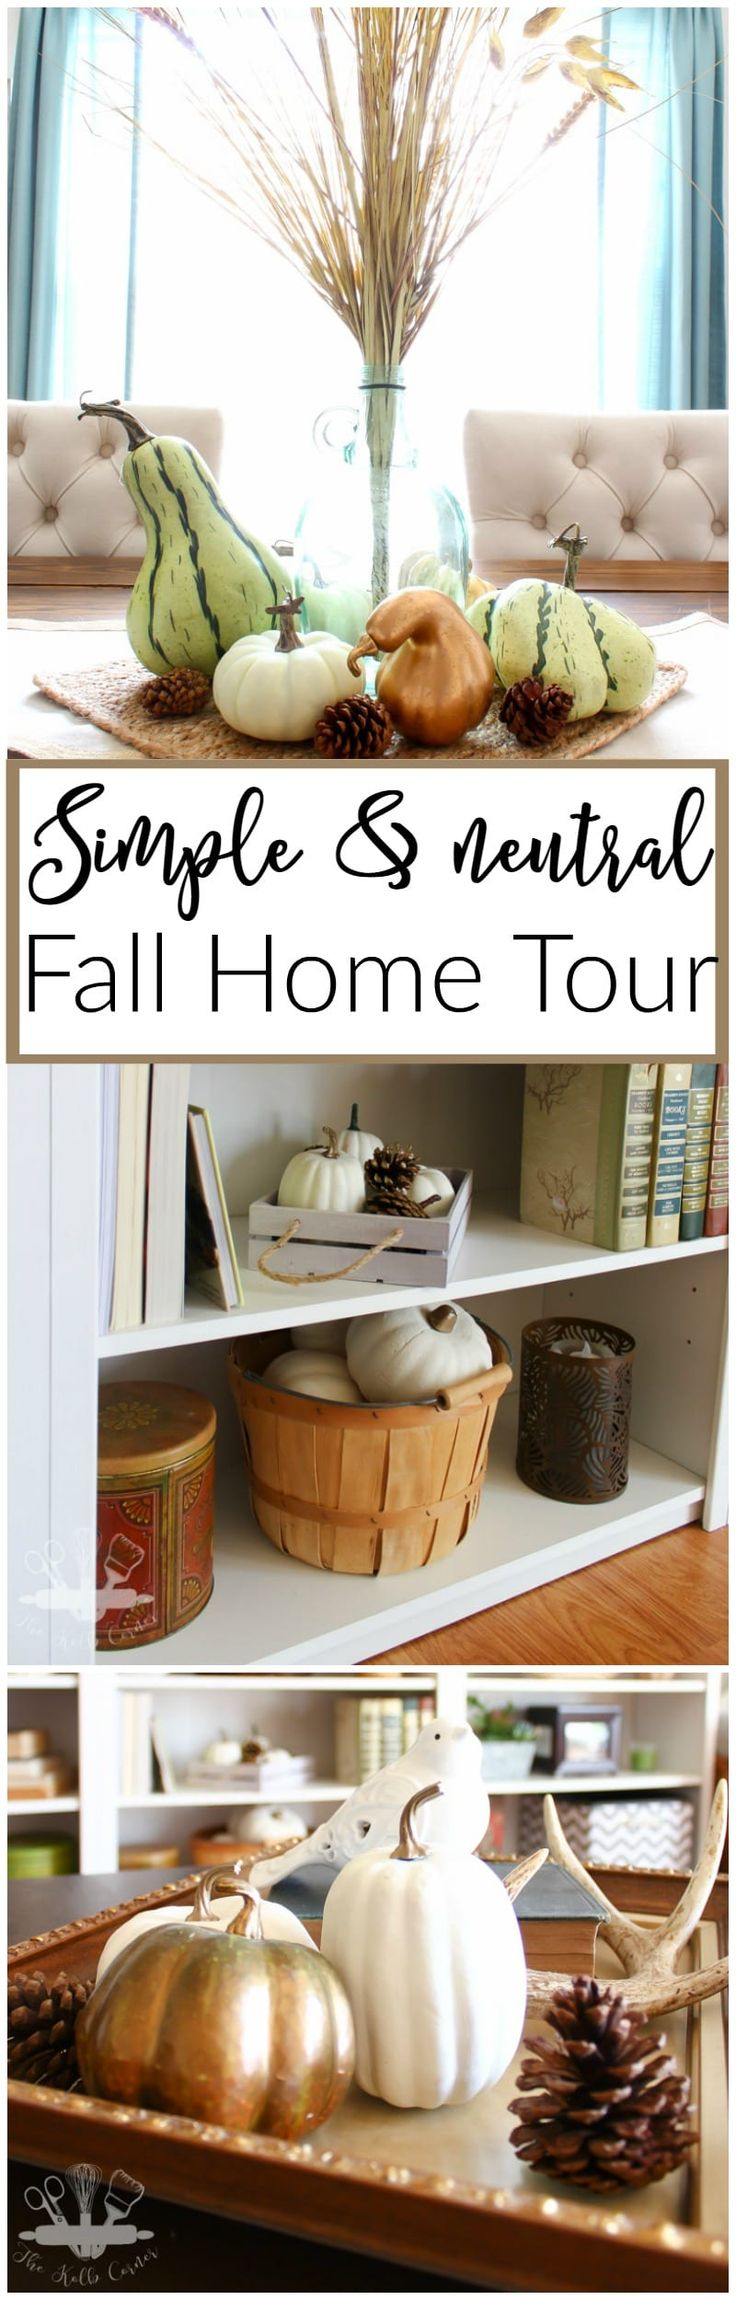 best home fall decor ideas images on pinterest fall decor